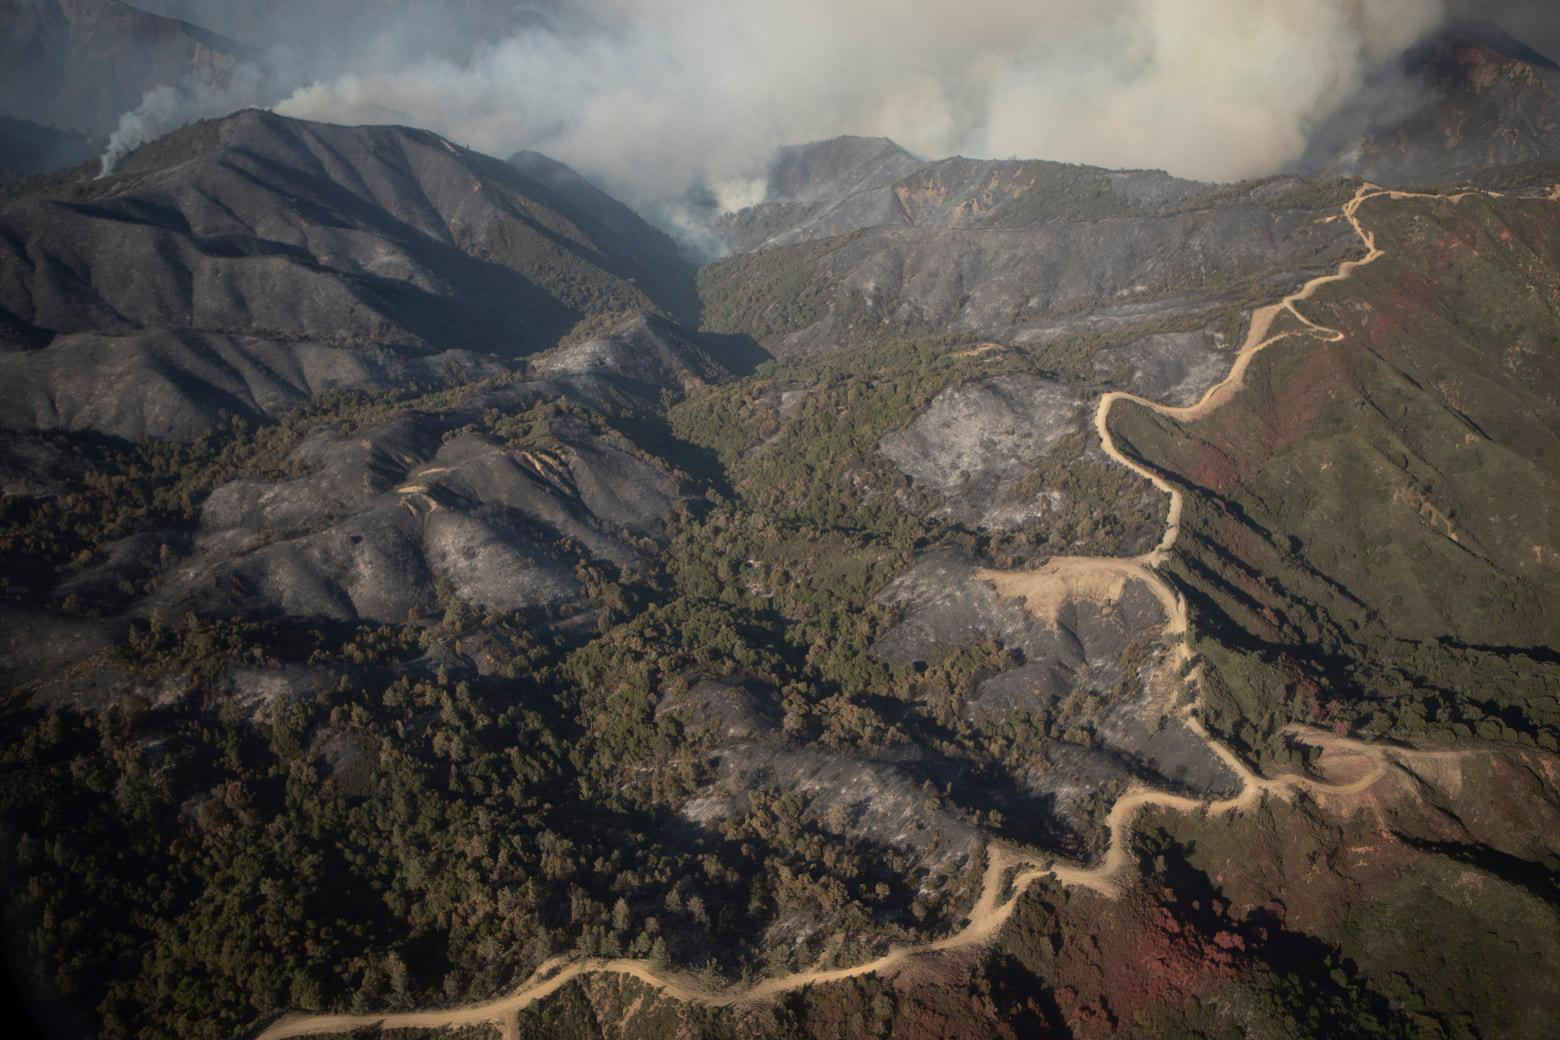 Firefighters gain ground on Dolan Fire, now 57% contained